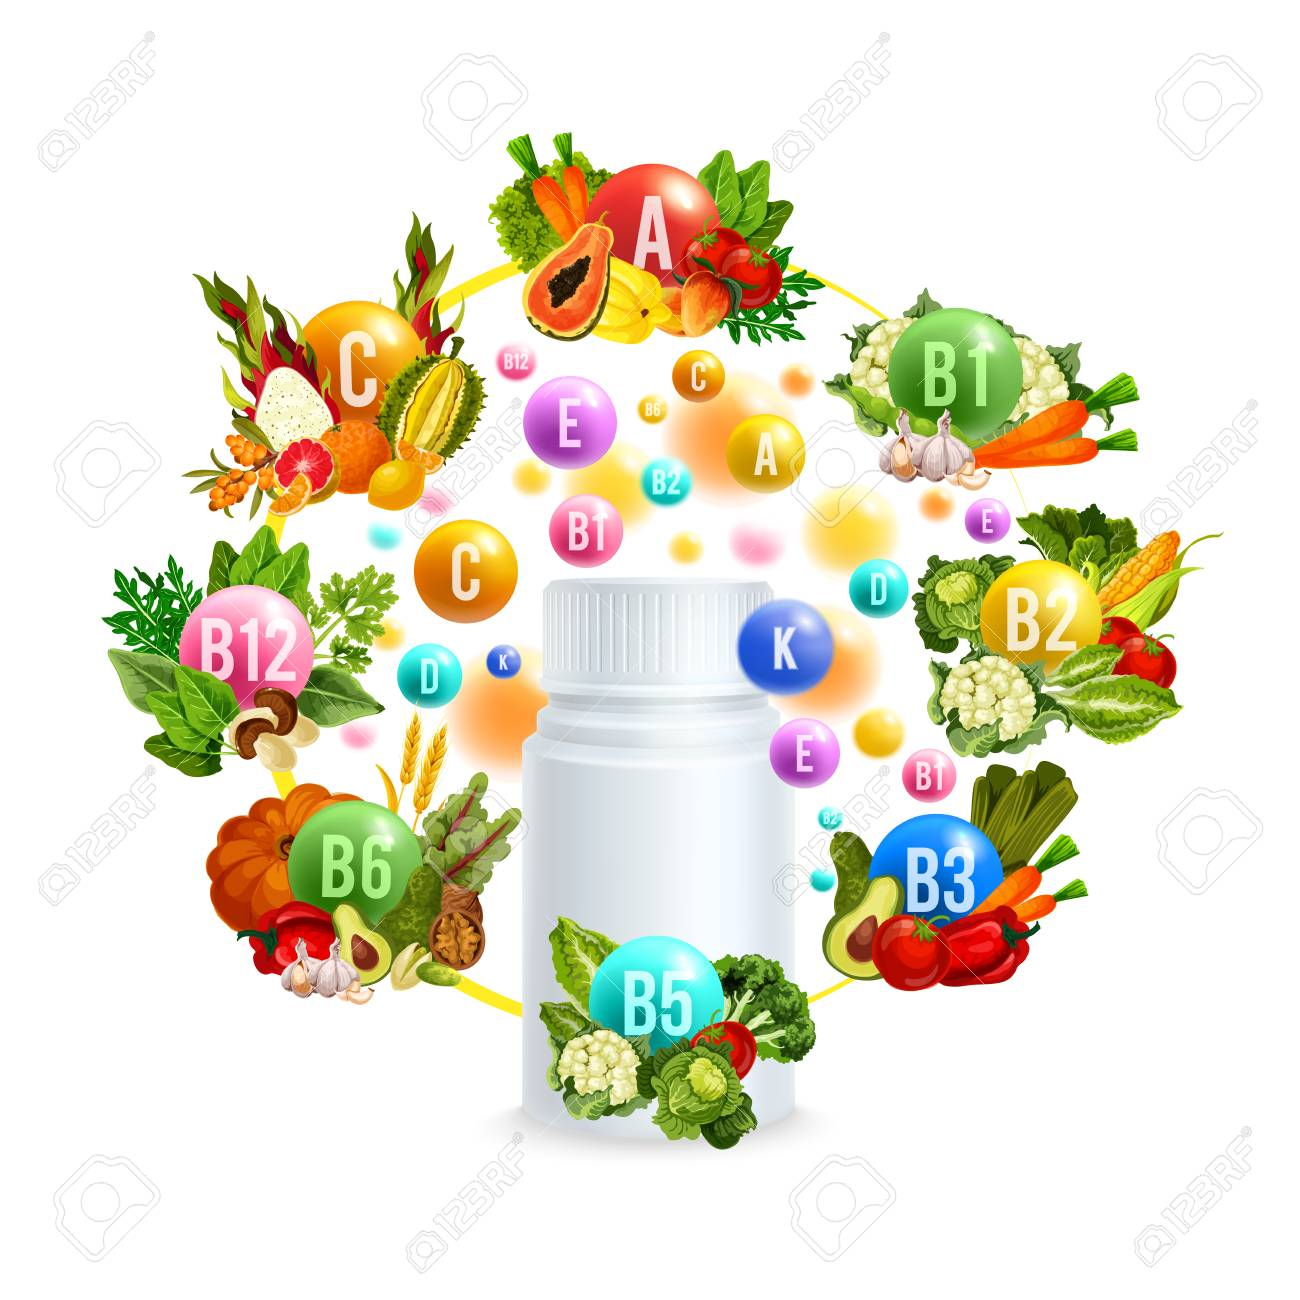 Natural vitamin with healthy food poster design - 103511877